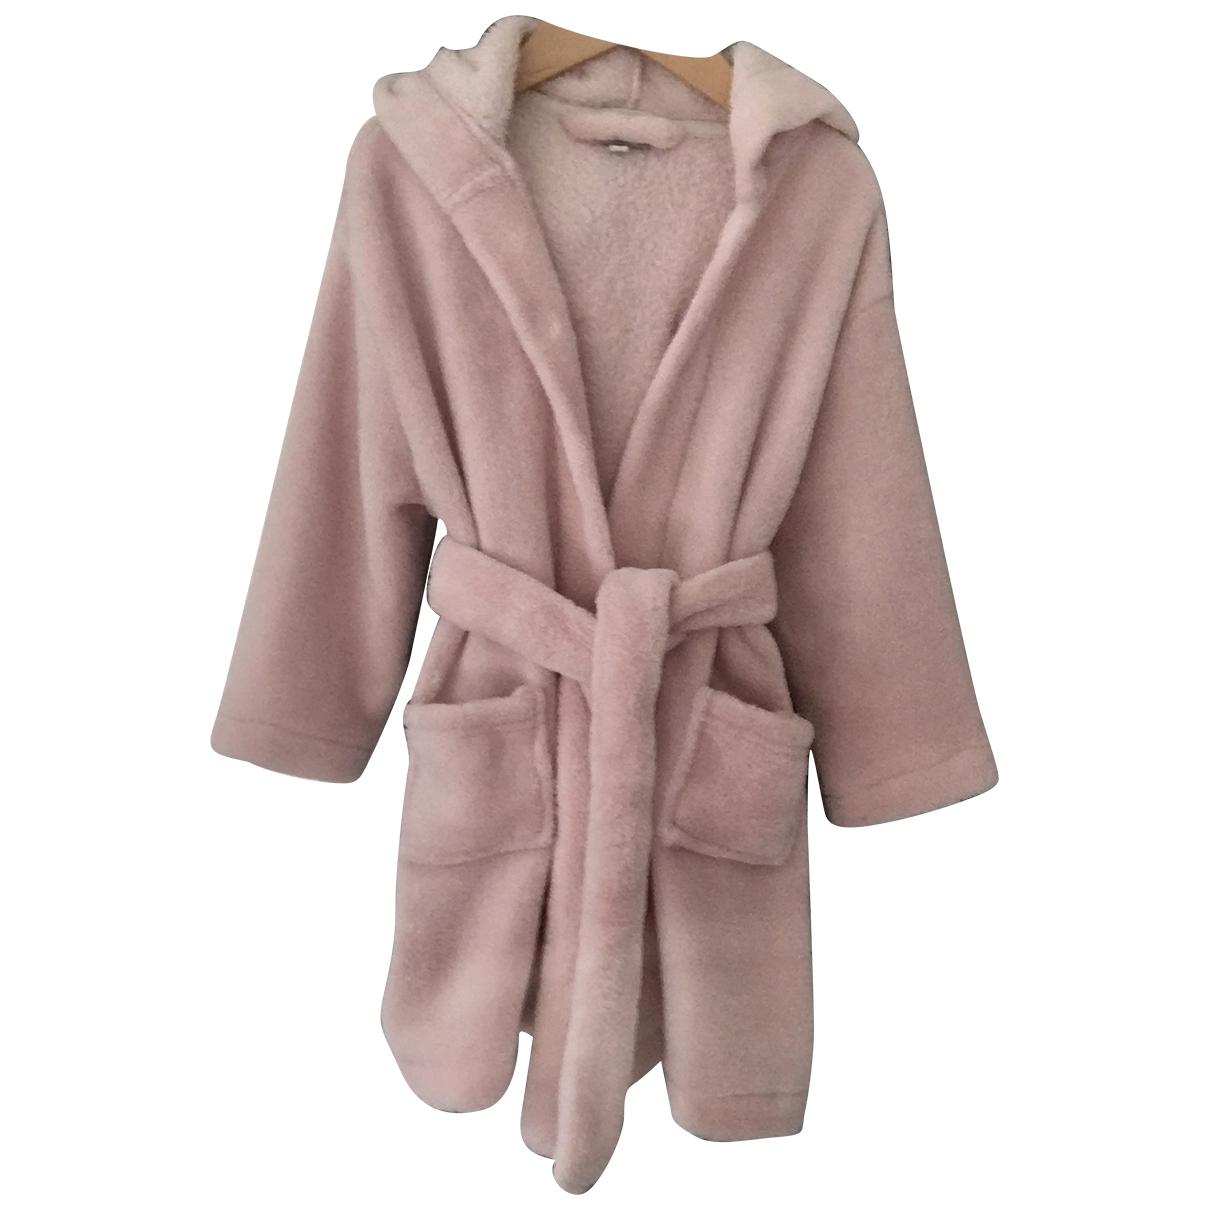 Cyrillus N Pink Cotton jacket & coat for Kids 4 years - up to 102cm FR